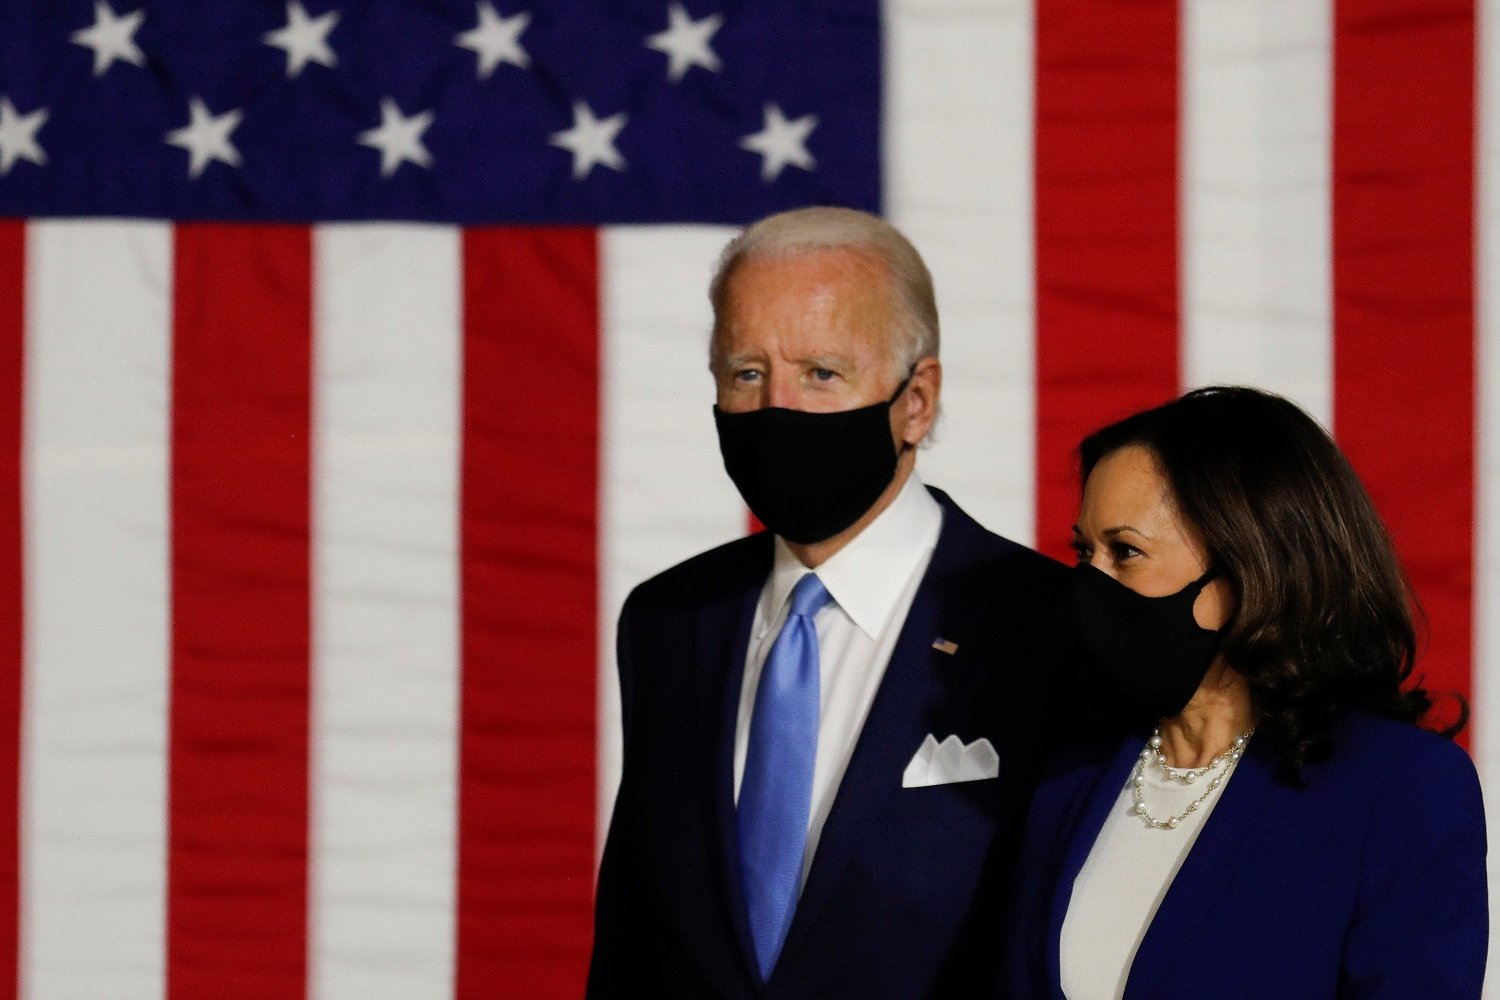 Democratic presidential candidate and former Vice President Joe Biden and vice presidential candidate Senator Kamala Harris take the stage at a campaign event, their first joint appearance since Biden named Harris as his running mate, at Alexis Dupont High School in Wilmington, Delaware, U.S., August 12, 2020. REUTERS/Carlos Barria